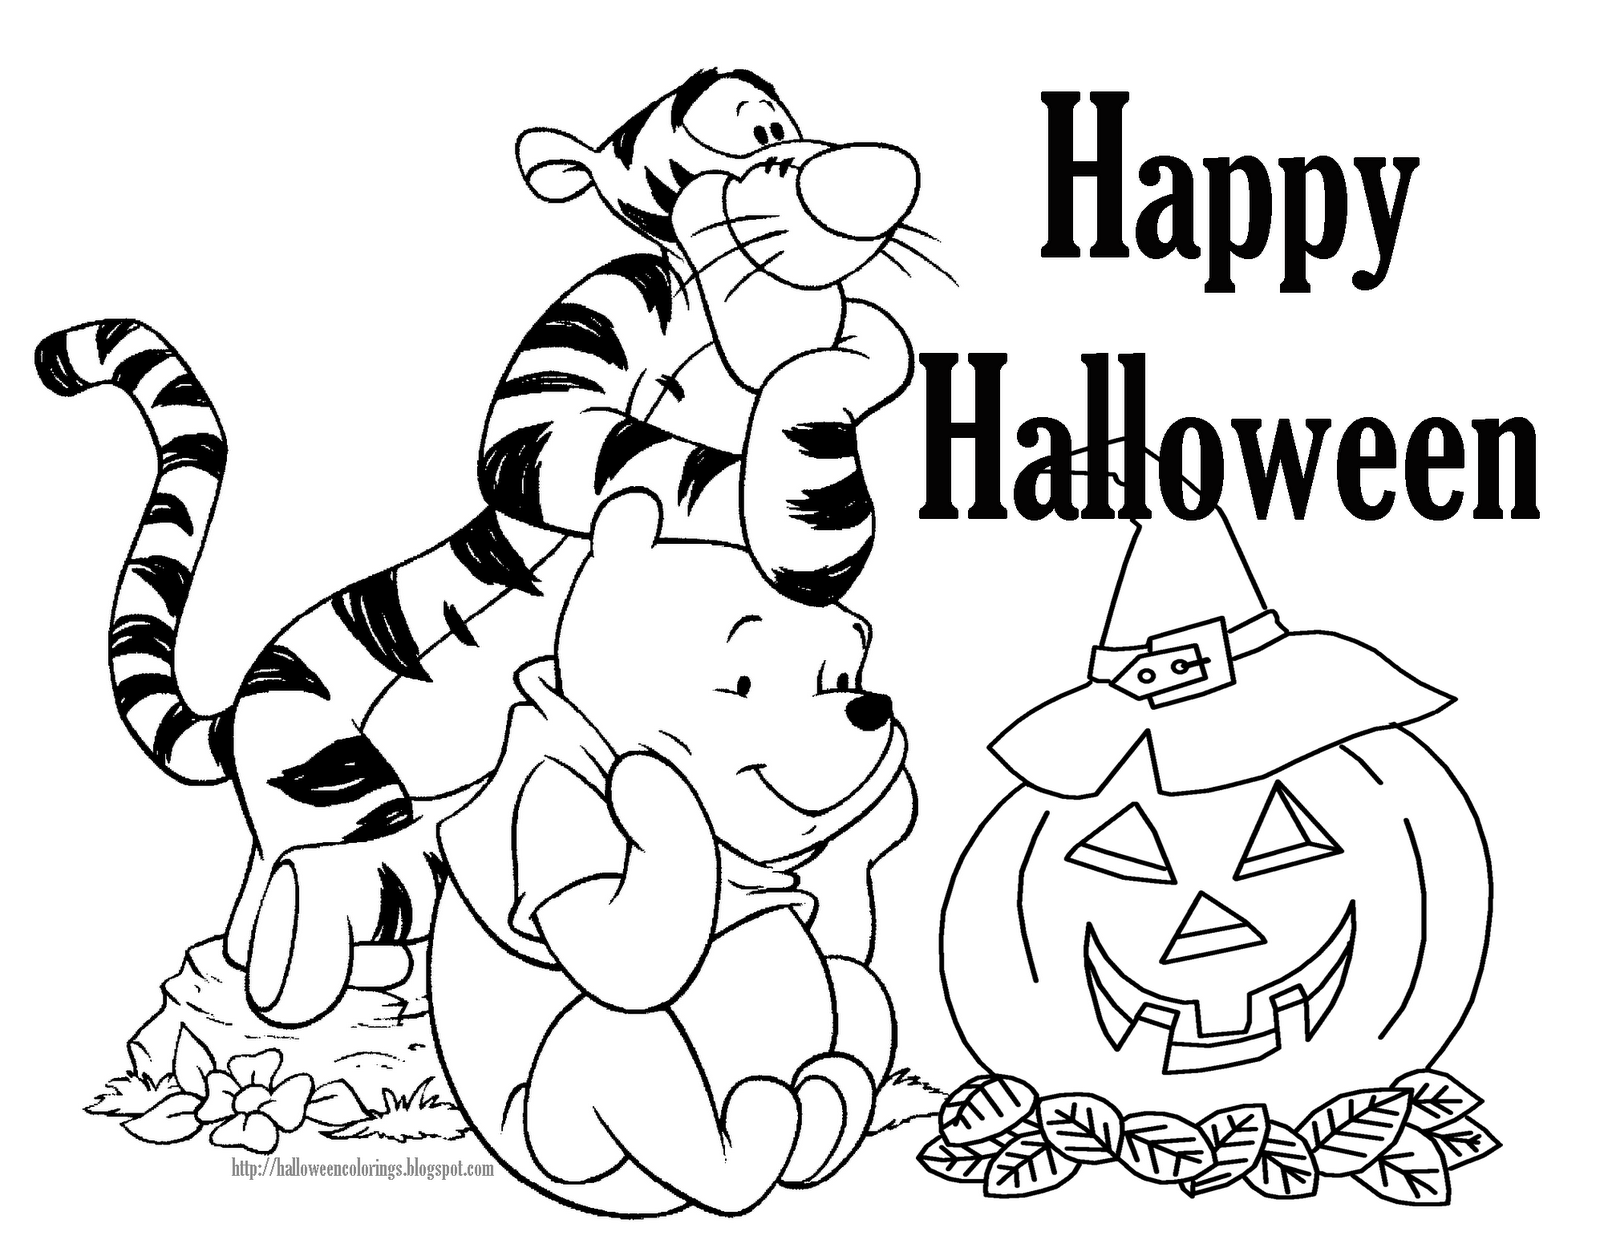 Halloween Elmo Coloring Pages - Coloring Home